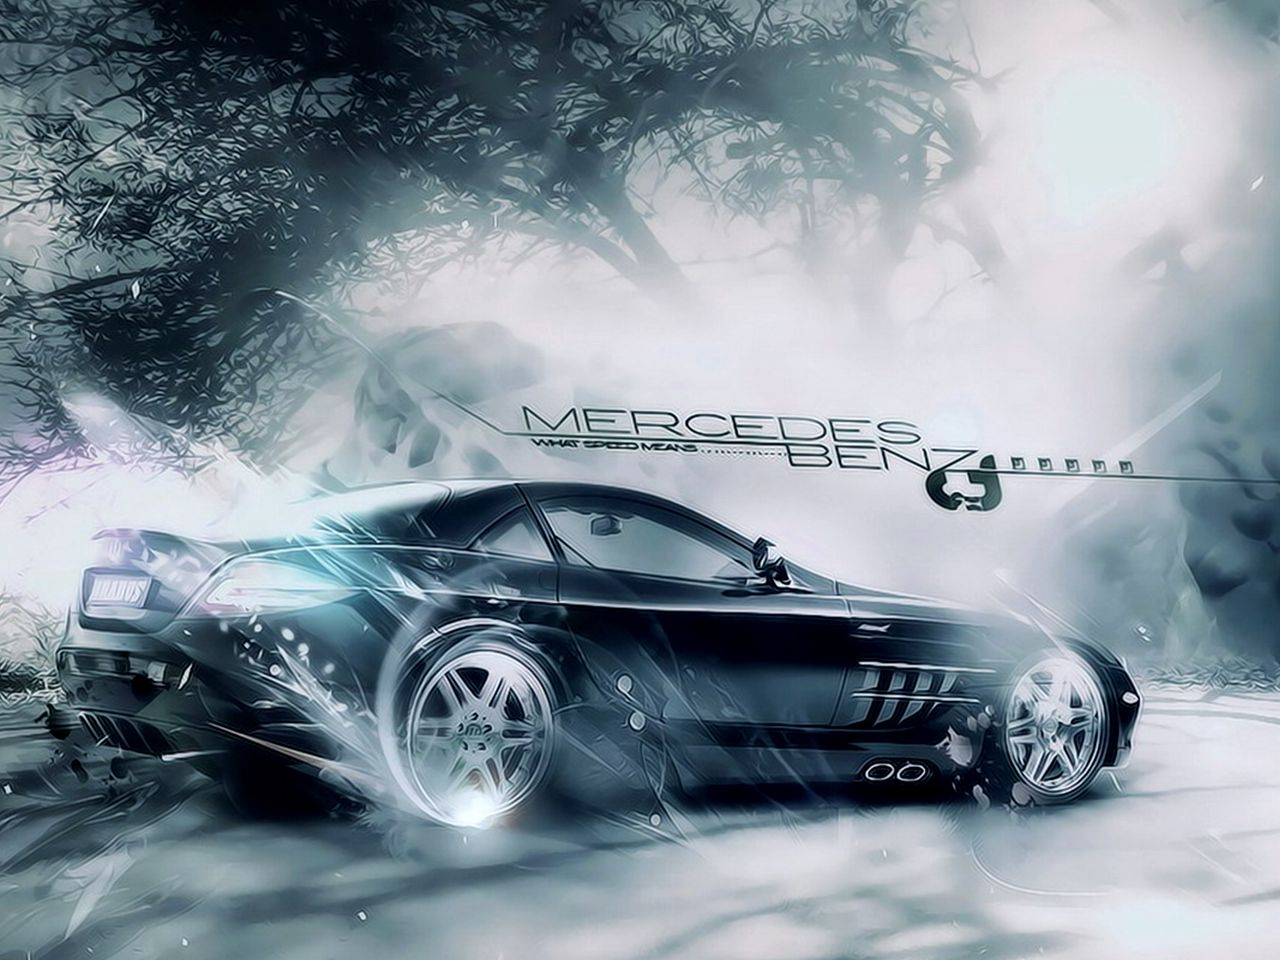 Black cars Hot and stylish HD Wallpapers collection 1280x960